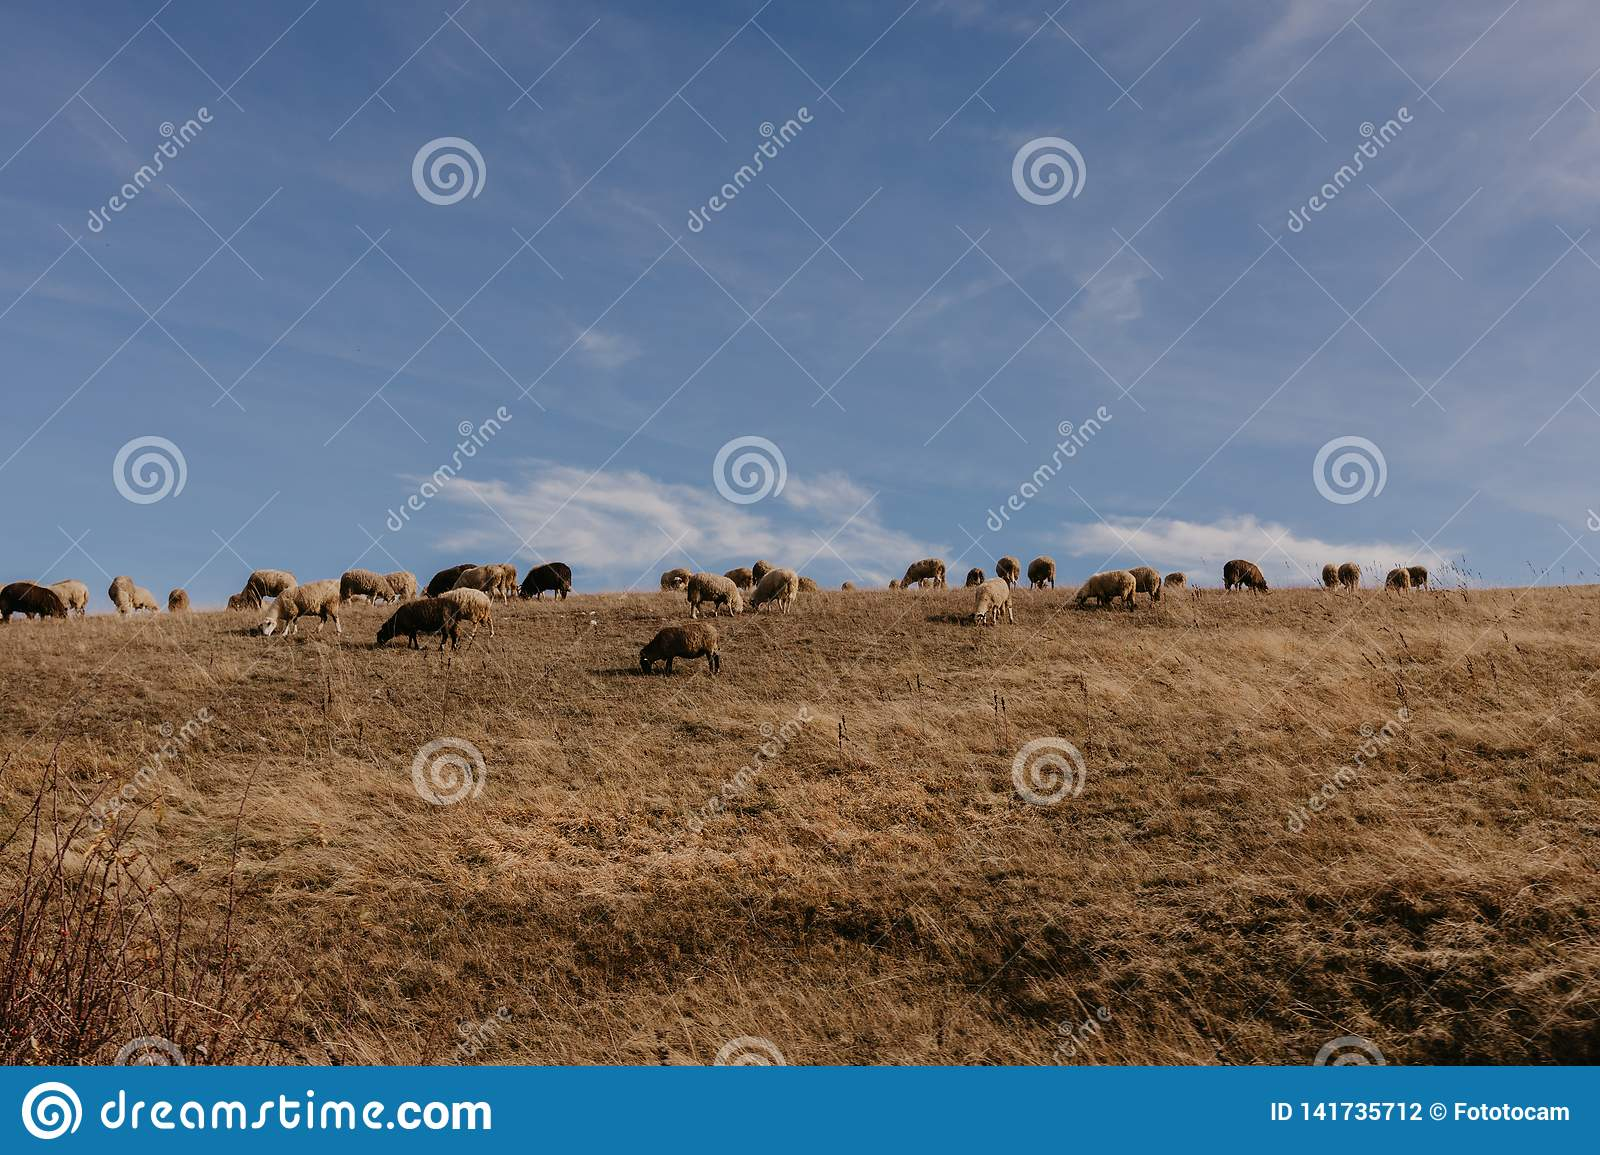 Many lambs in the meadow